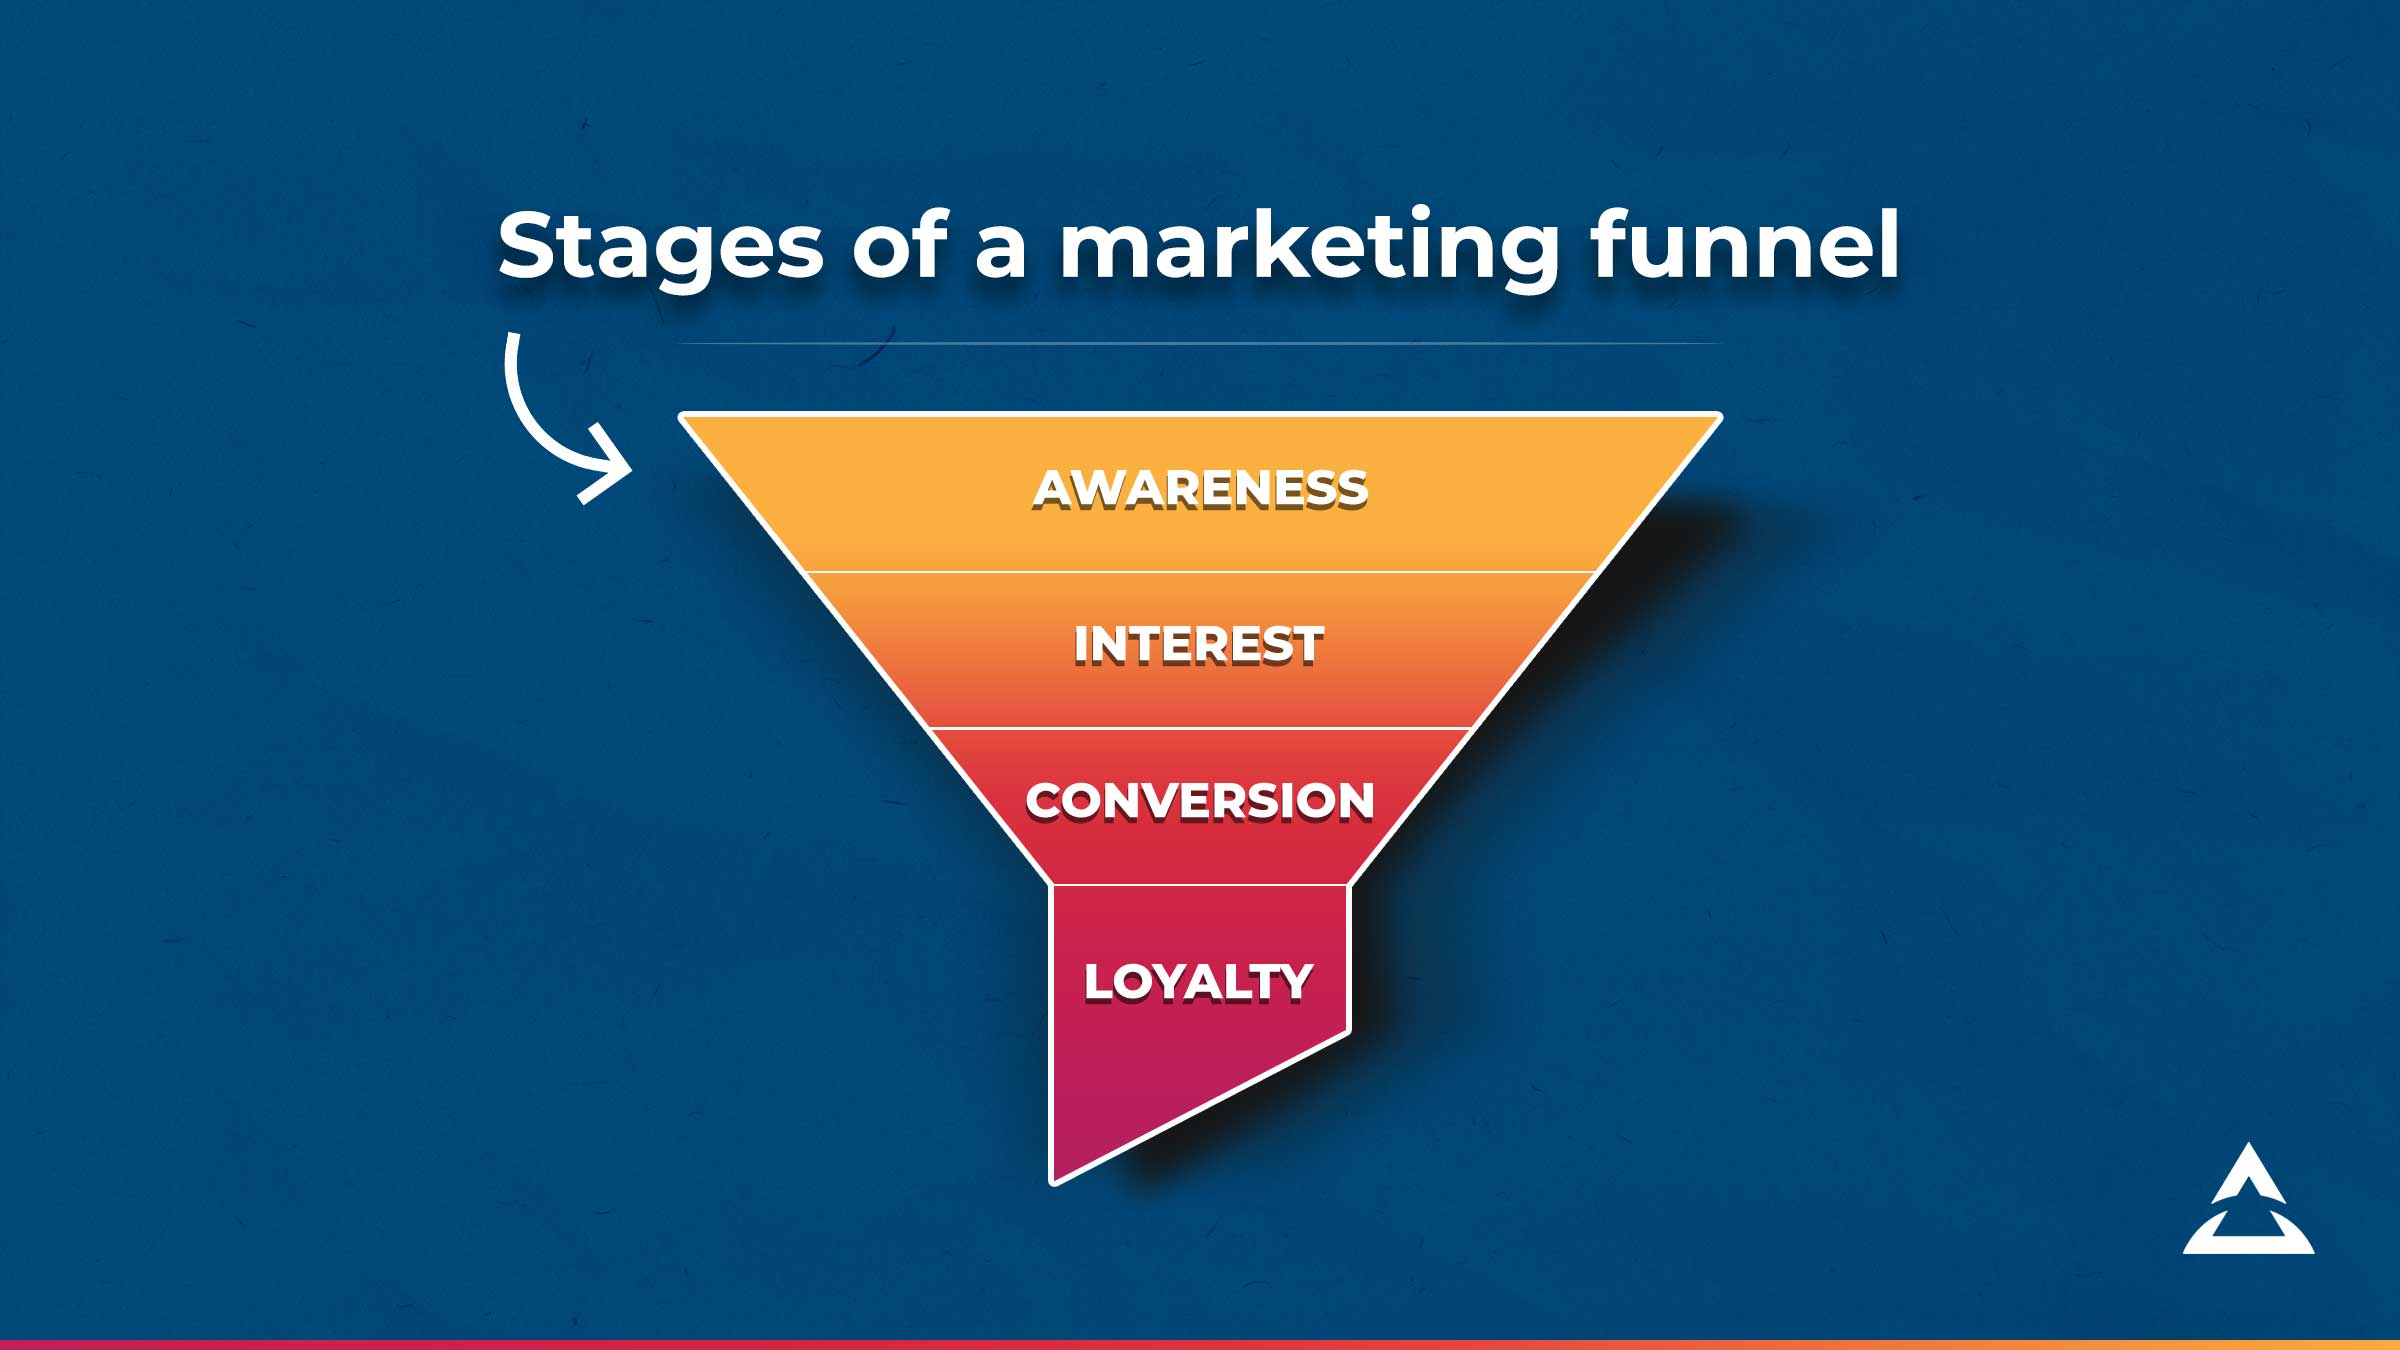 Stages of the marketing funnel - awareness, interest, conversion, loyalty